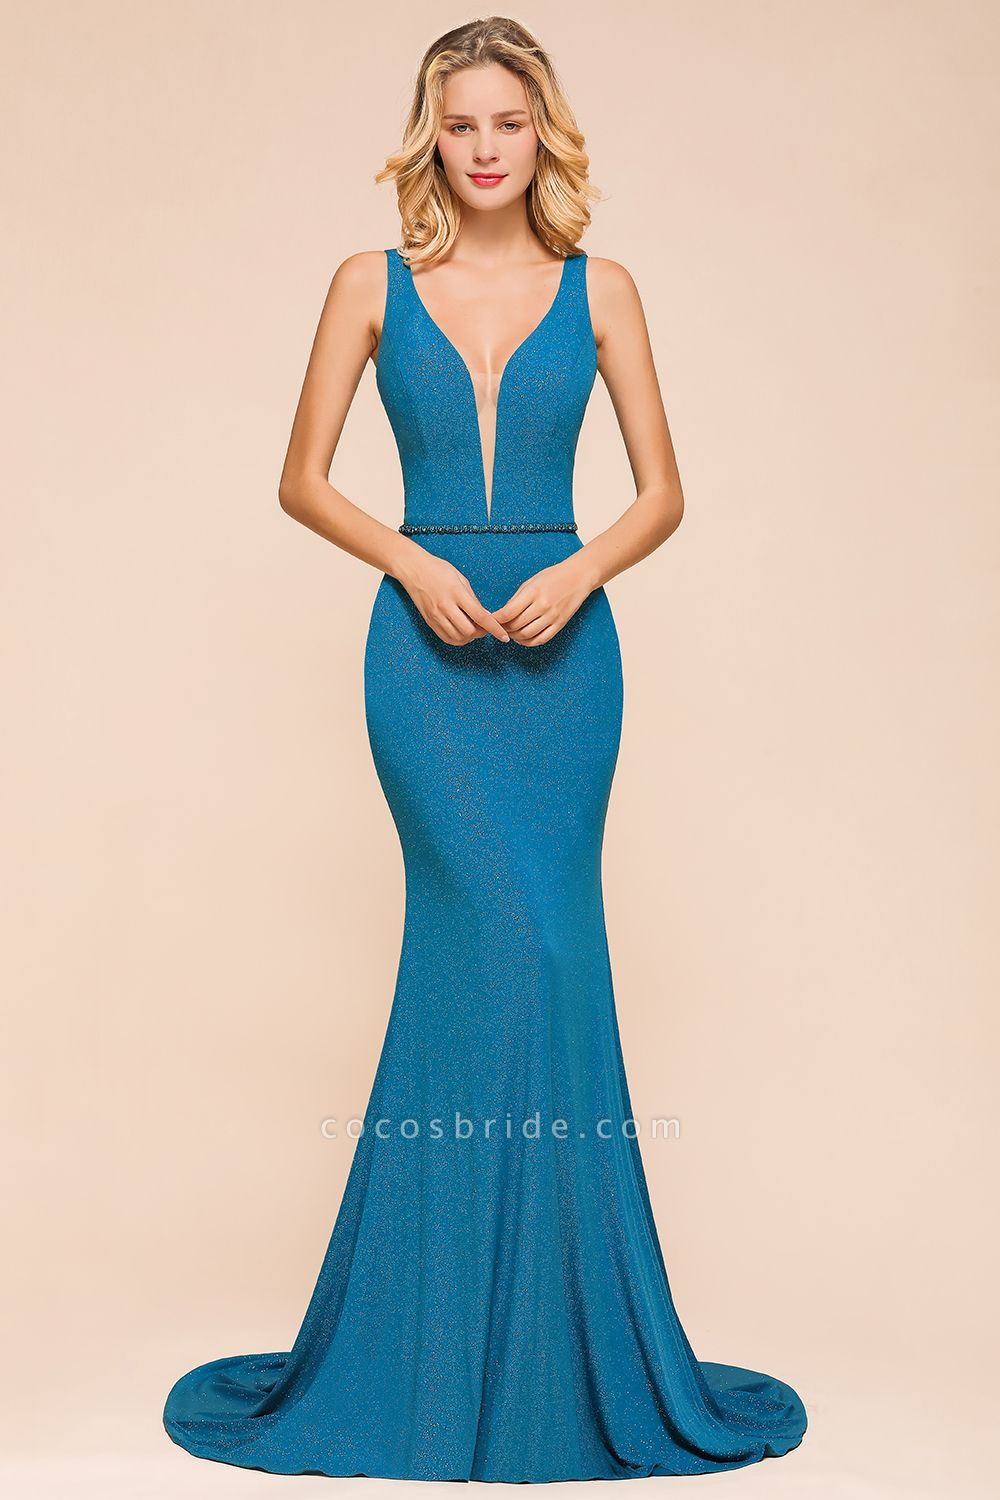 Elegant Open Back V-neck Long Mermaid Prom Dress